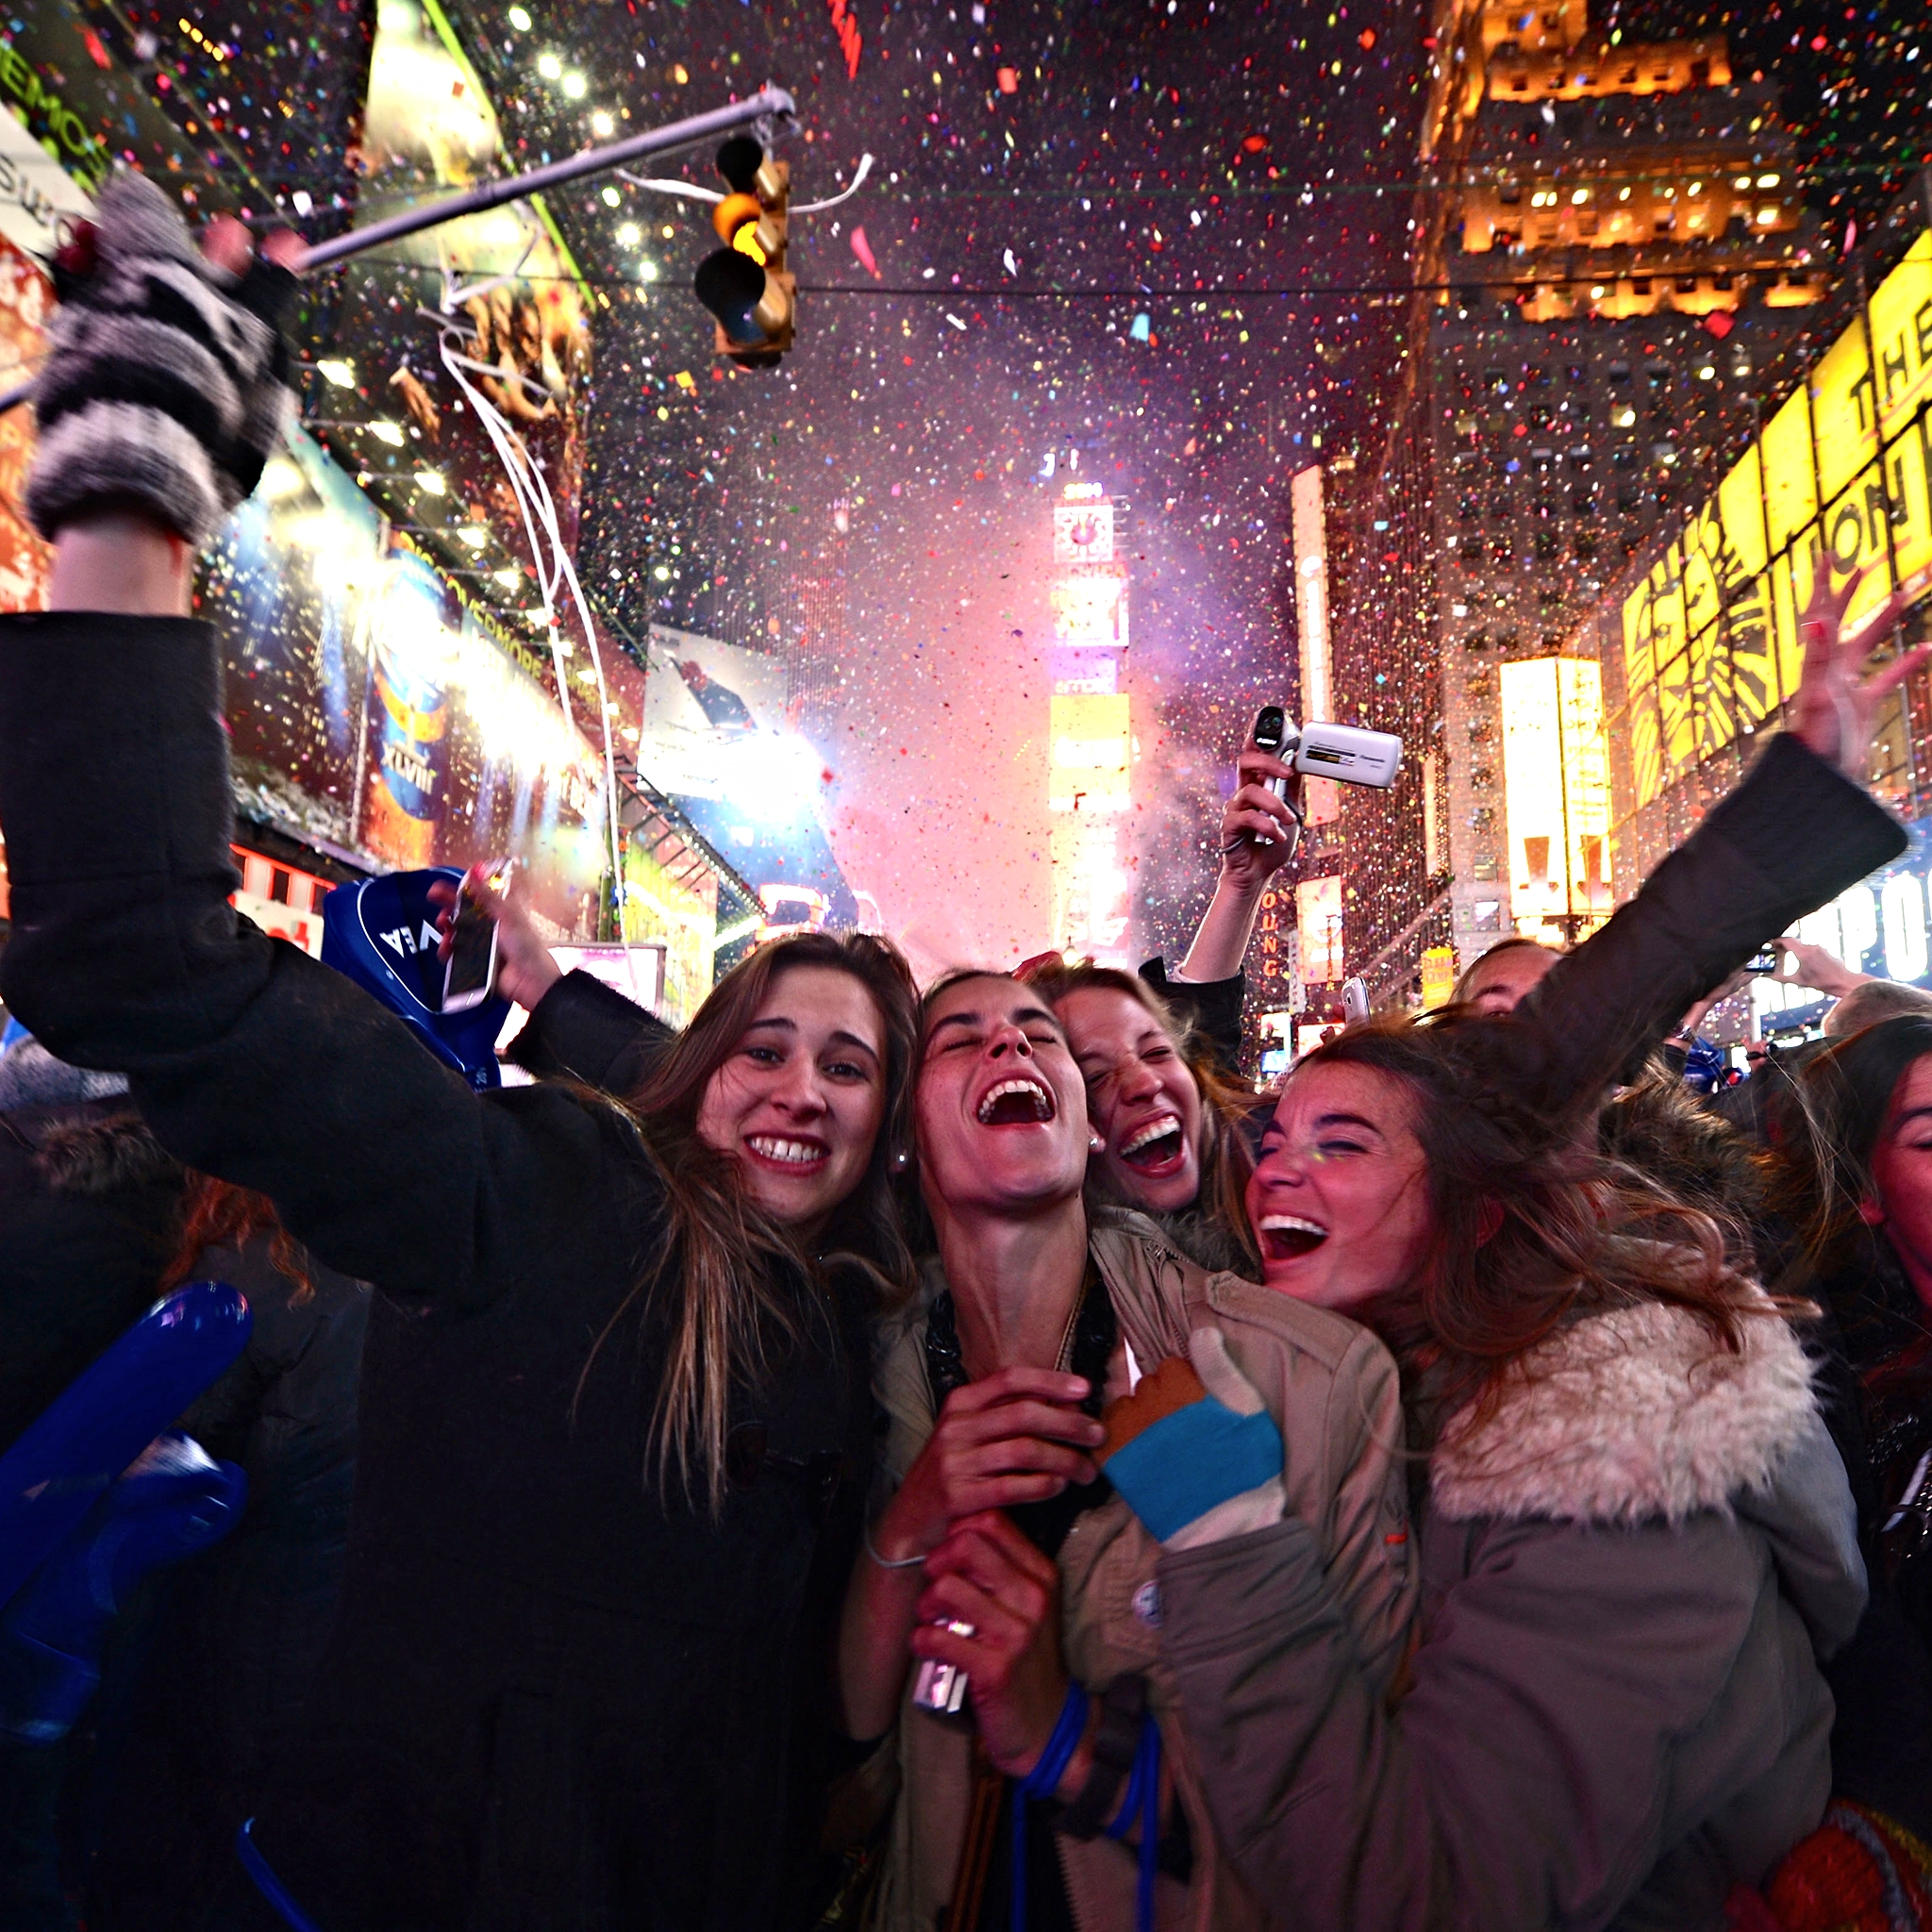 As the famous New Year's Eve Ball descends atop One Times Square, an estimated one million people in Times Square, millions nationwide and over a billion watching throughout the world are united in bidding a collective farewell to the departing year, and expressing joy and hope for the year ahead.